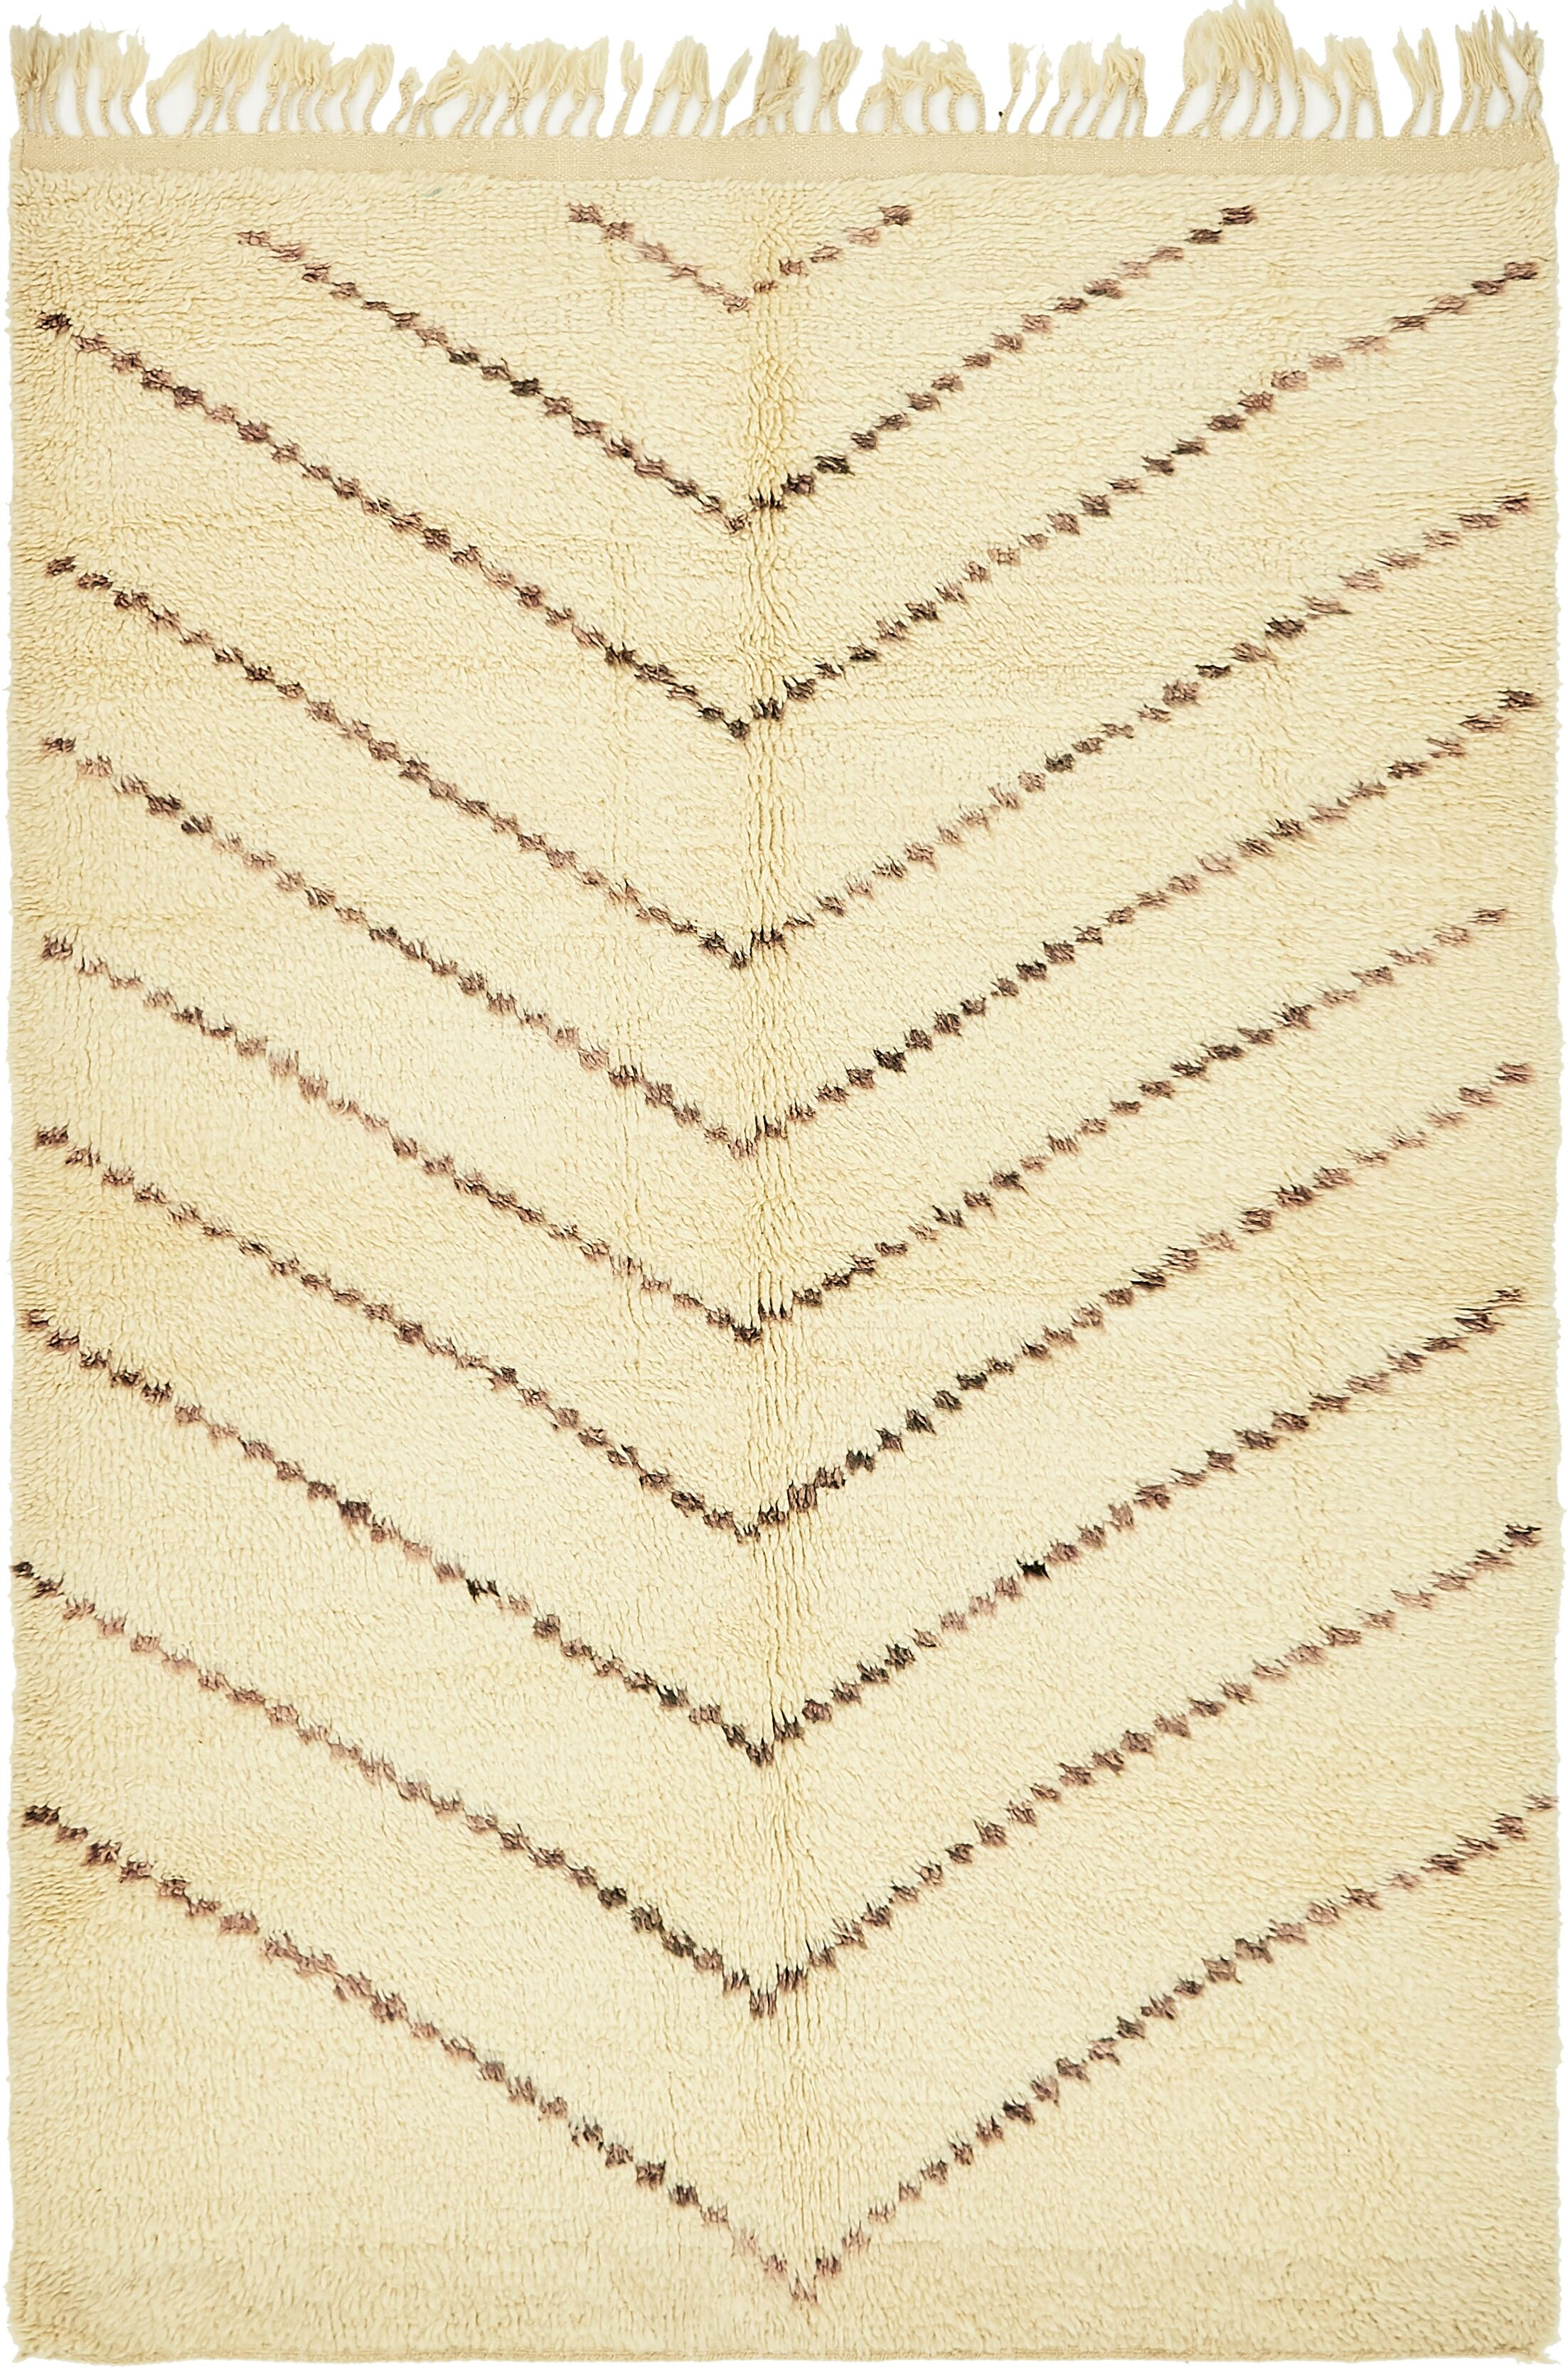 One-of-a-Kind Tott and Eling Hand-Knotted Wool Beige Area Rug